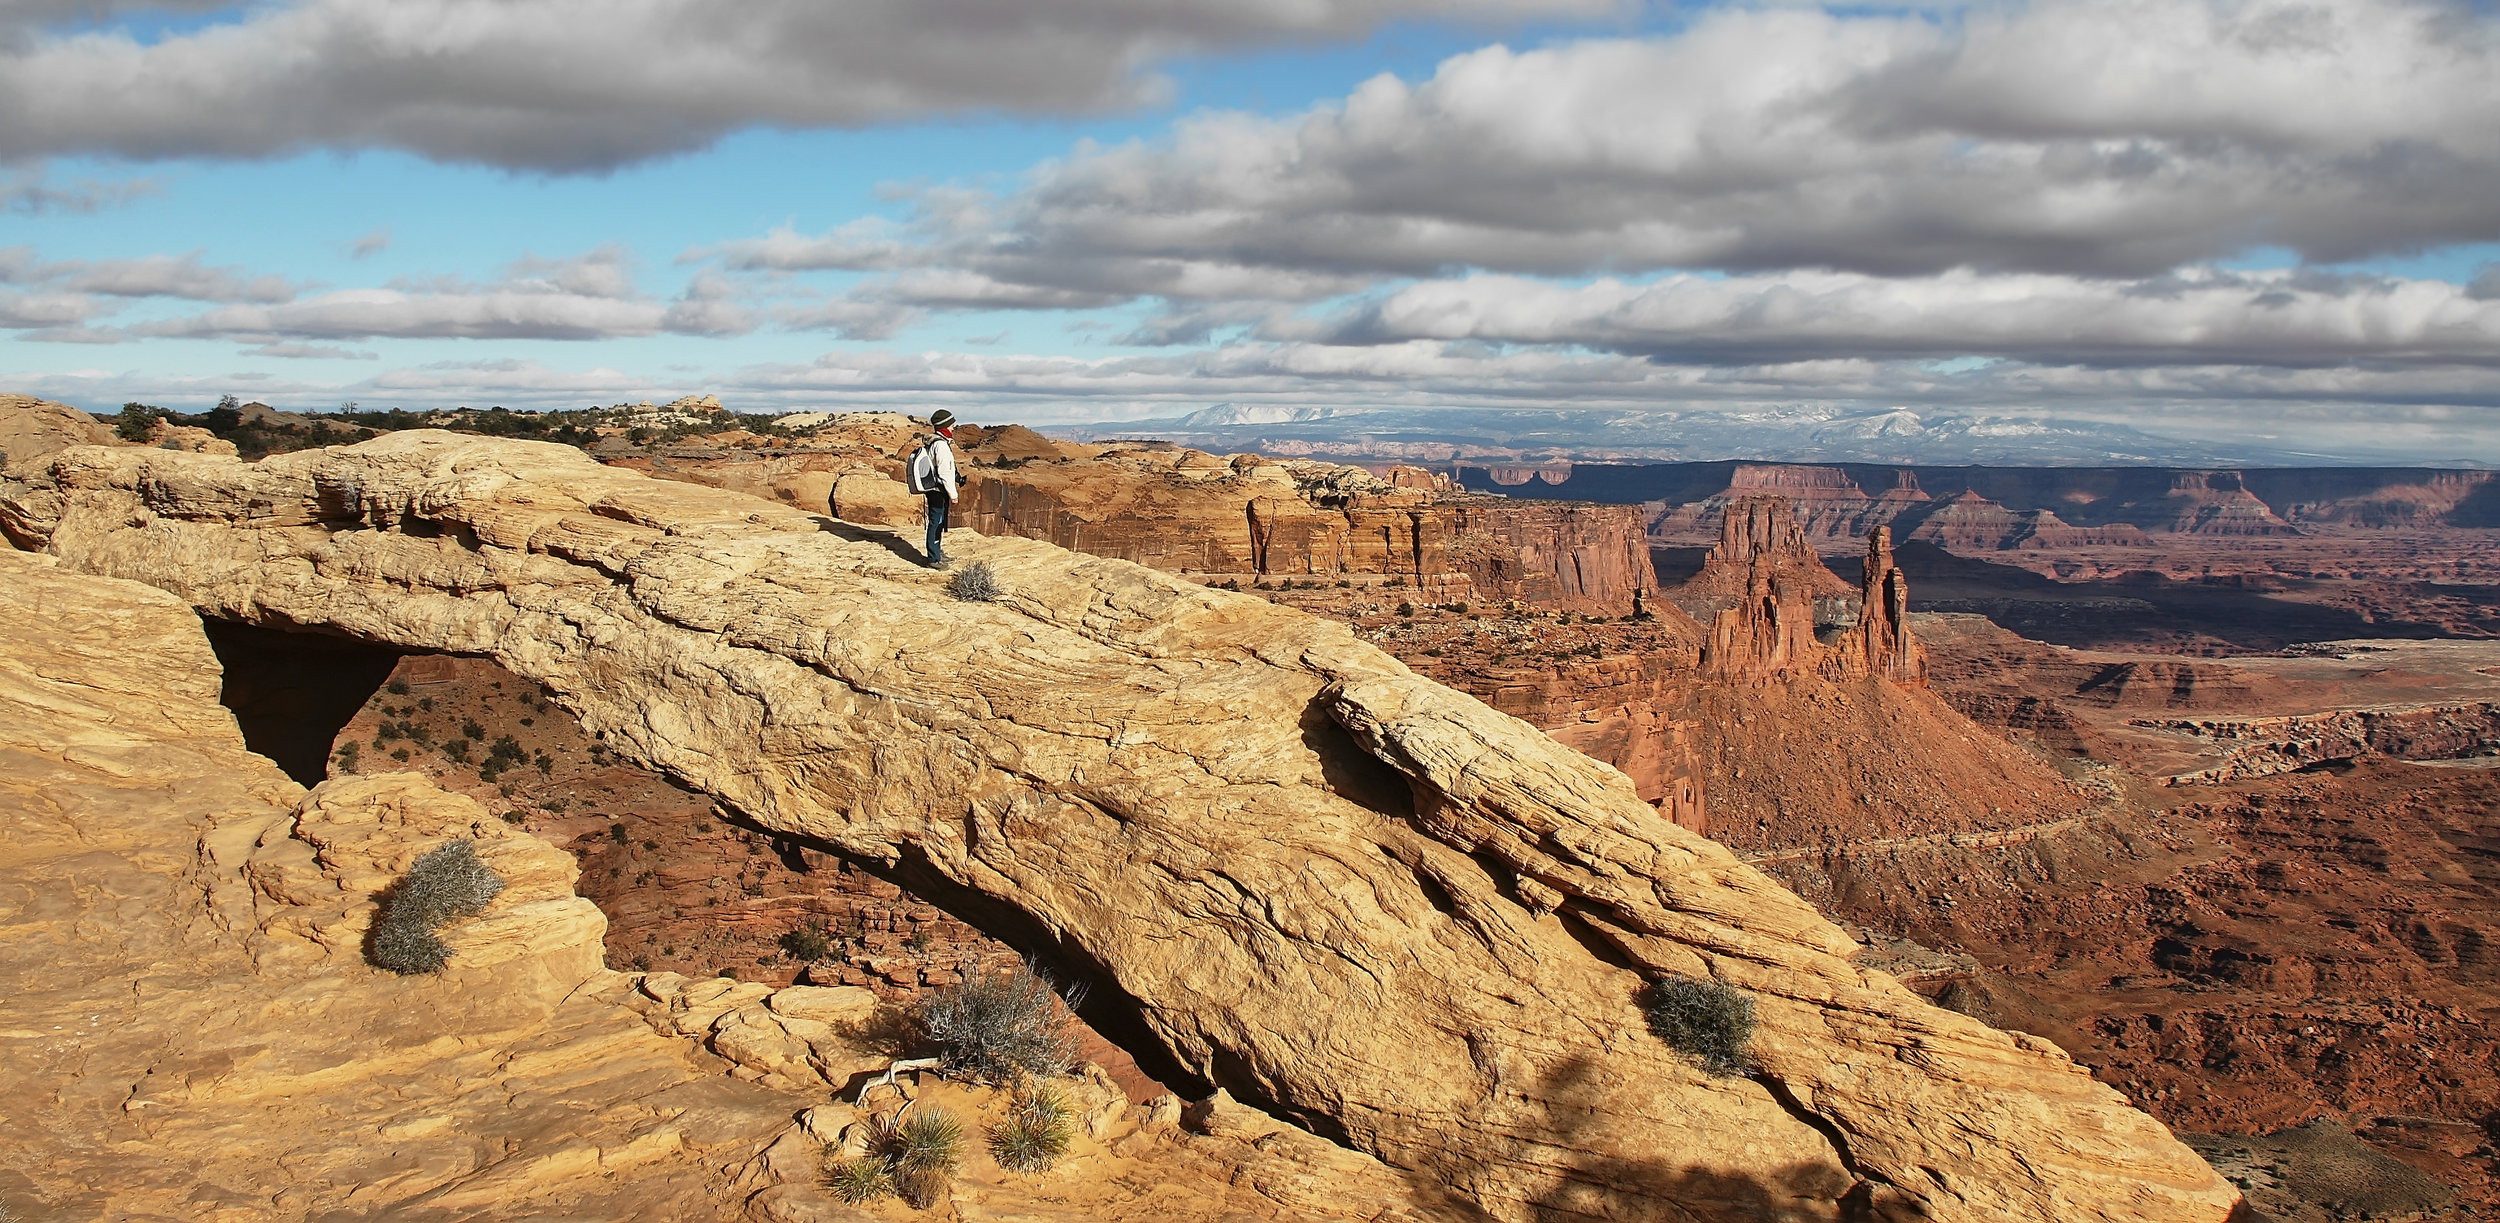 girl-at-mesa-arch-in-canyonlands-national-park-P6RM5T7.jpg